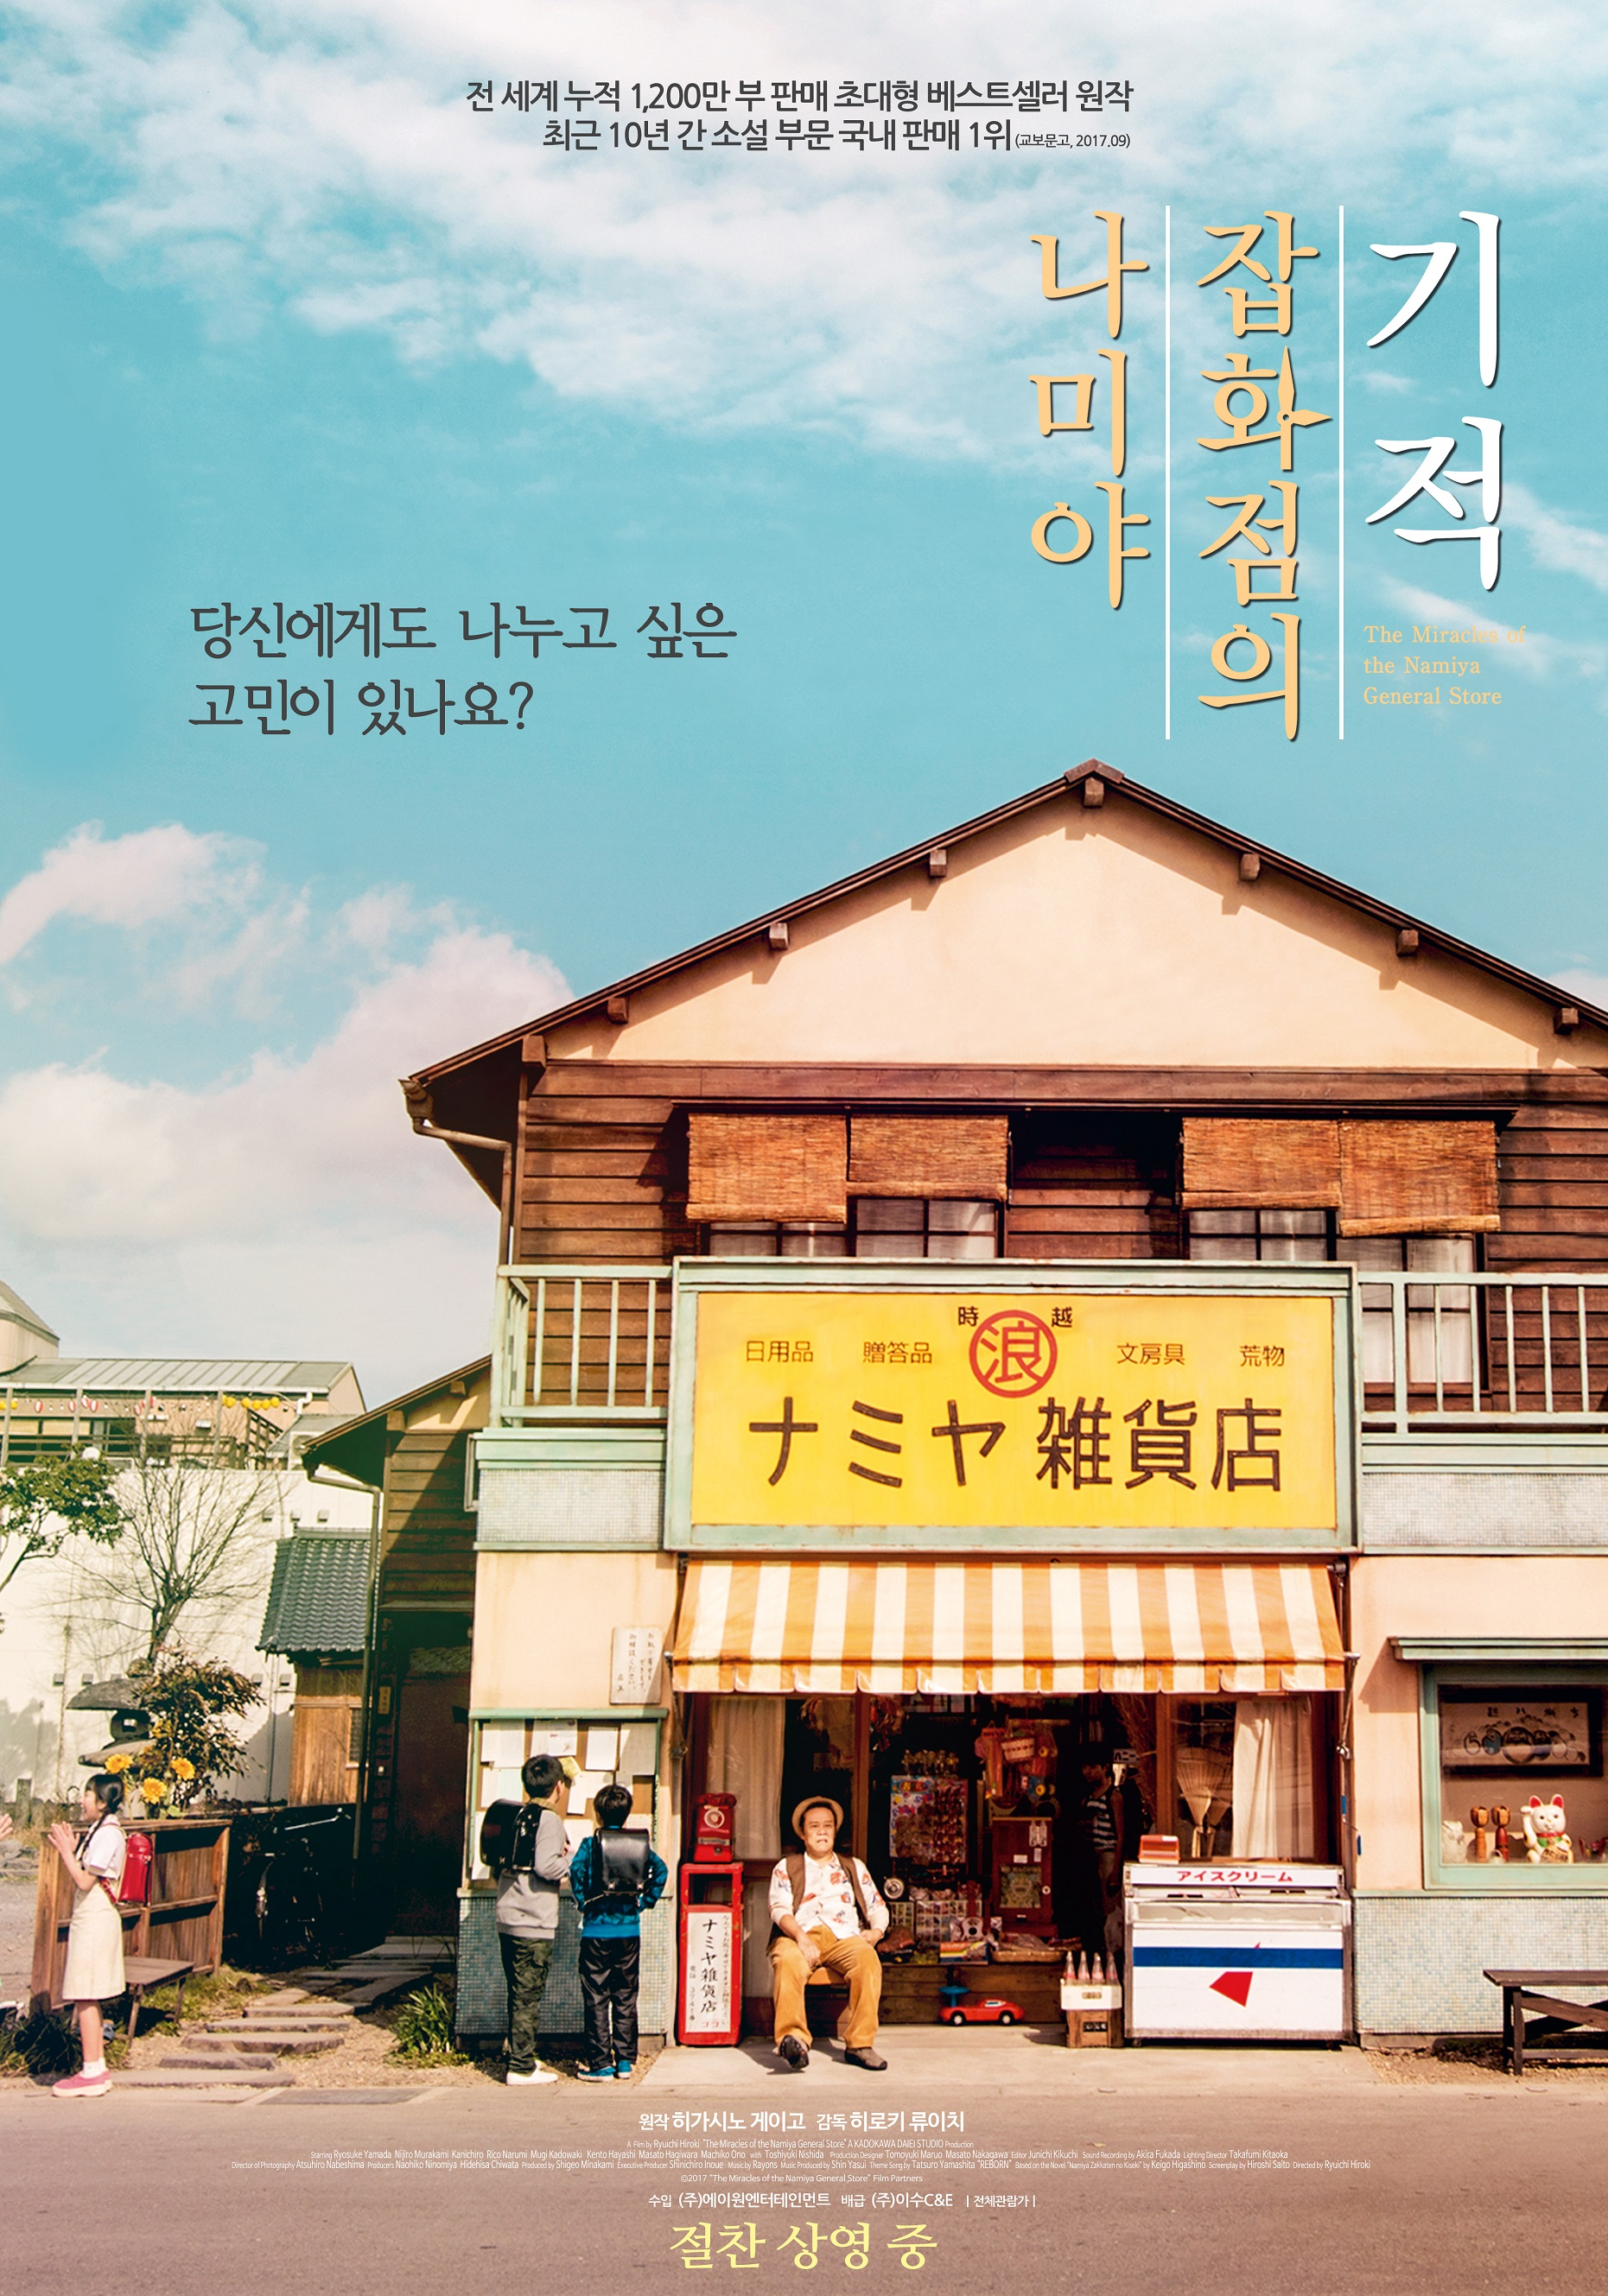 나미야 잡화점의 기적 (The Miracles of the Namiya General Store, 2017)